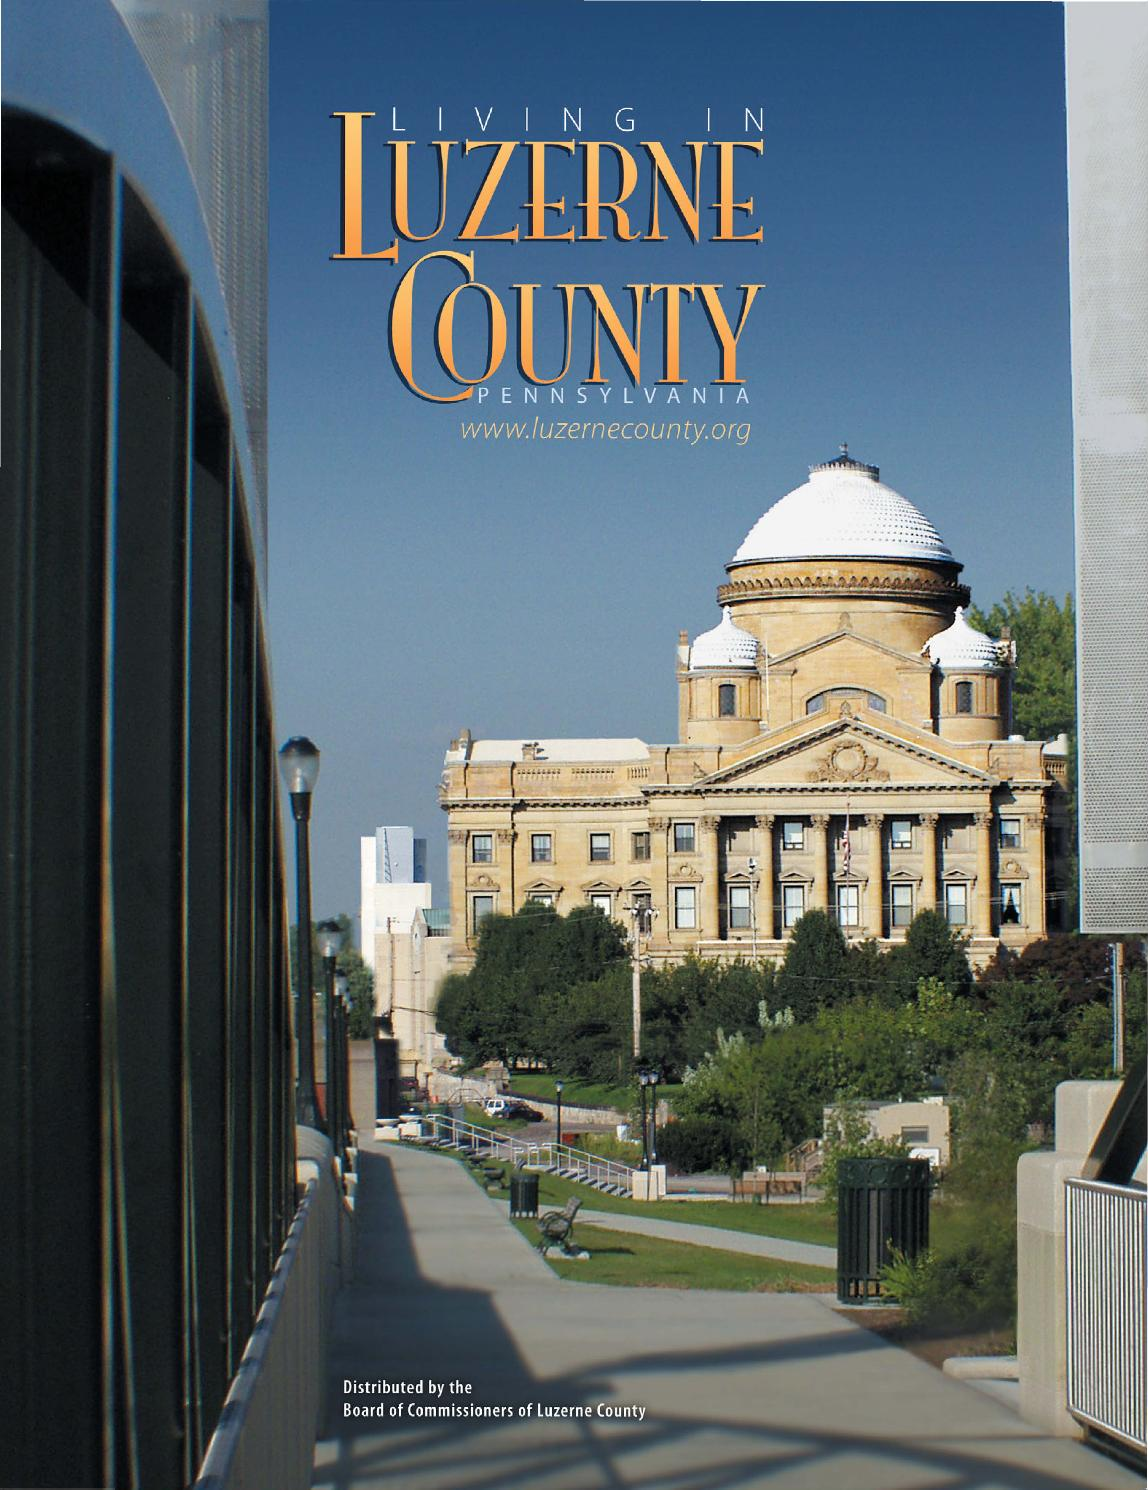 Living in Luzerne County, PA by Atlantic Communications Group, Inc